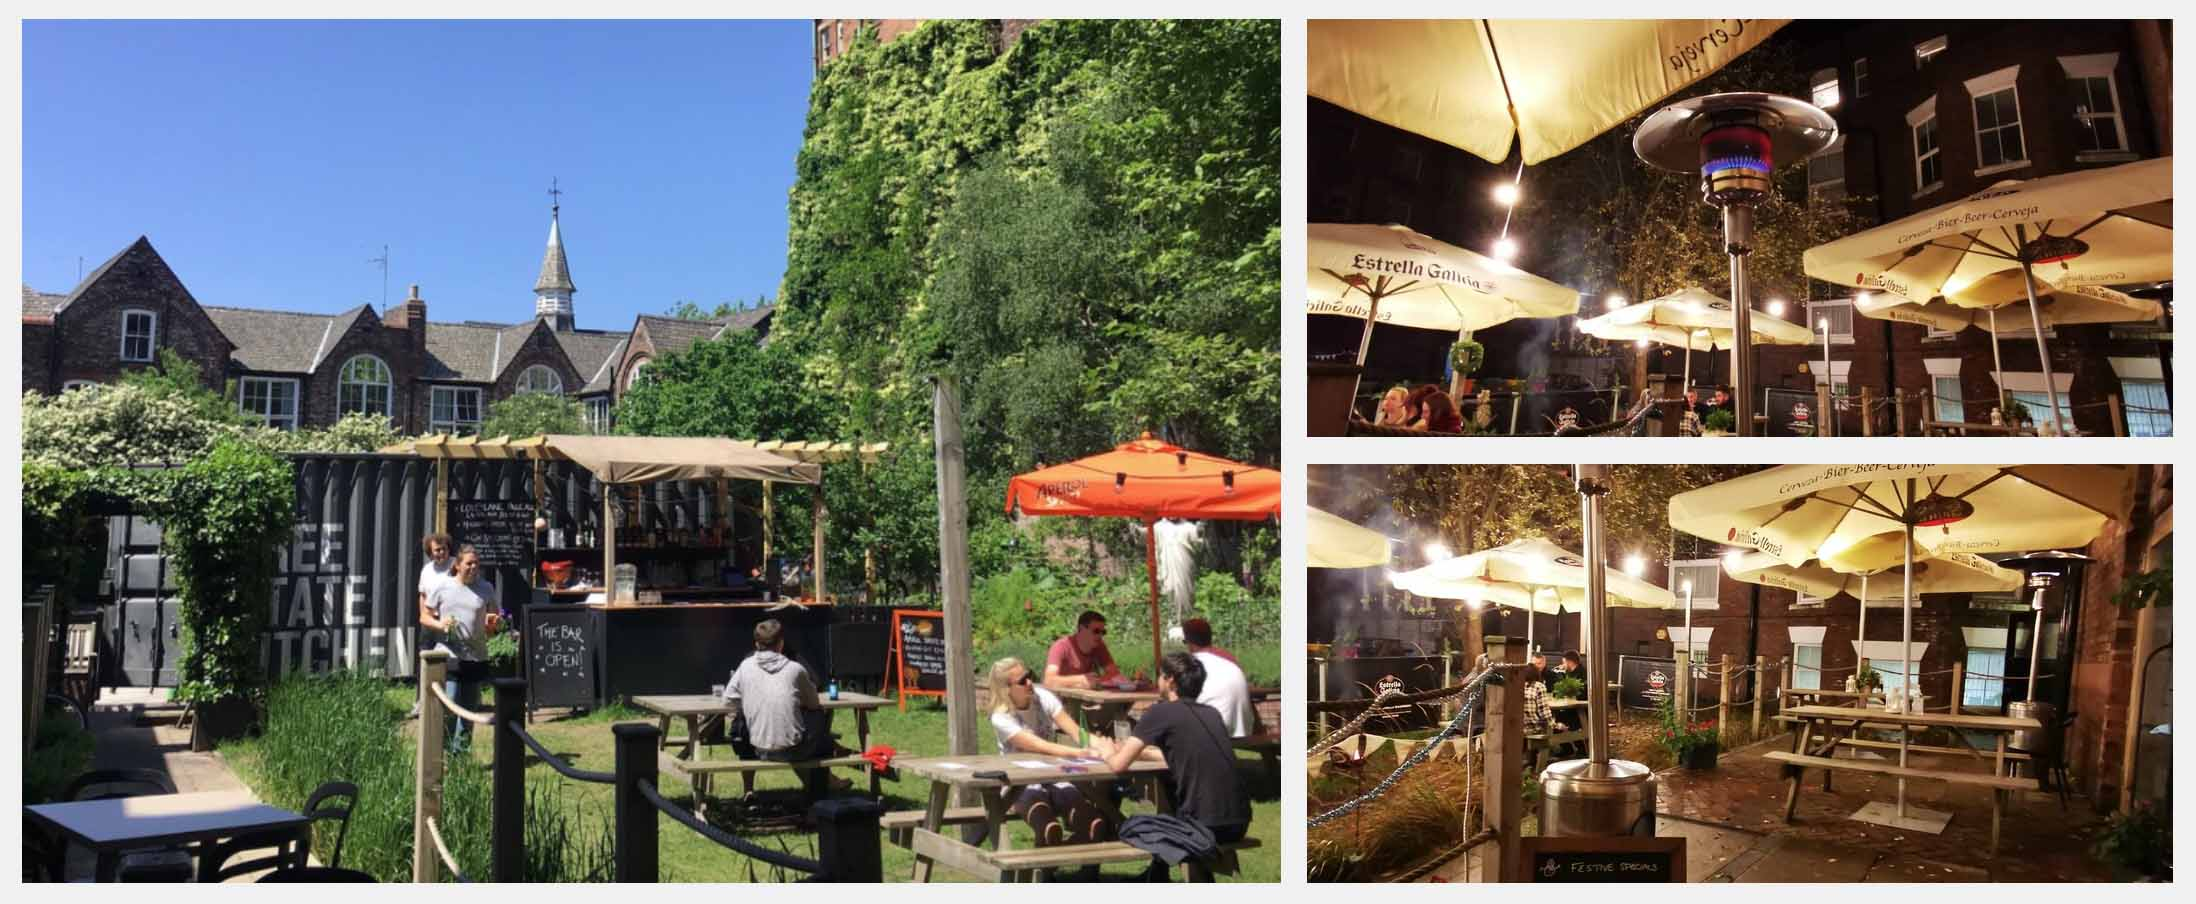 Best Beer Gardens in Liverpool - Free State Kitchen